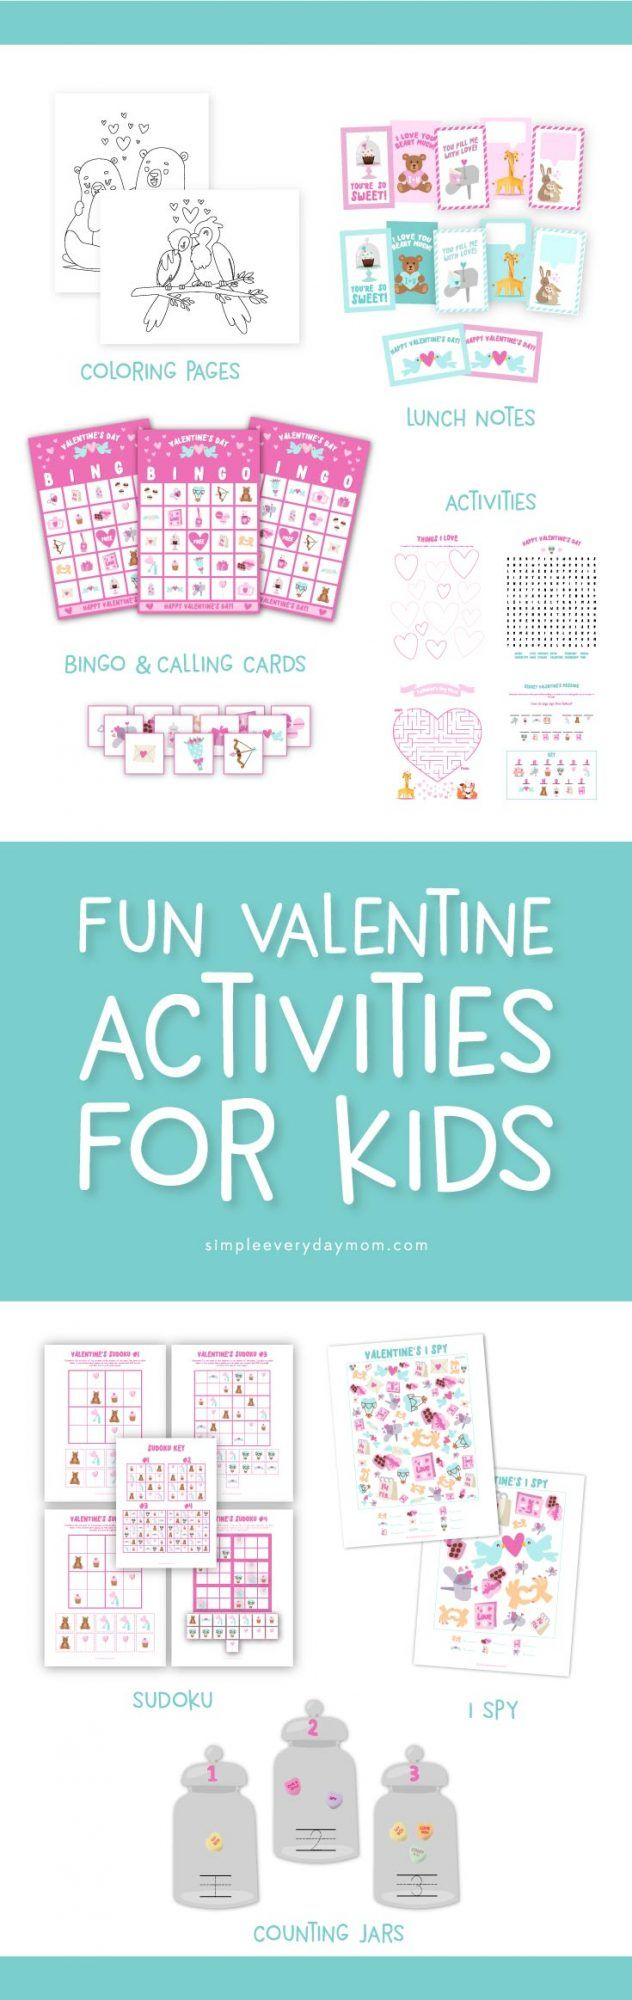 Your kids will love celebrating valentine's day even more with these printable activities that include Valentine's bingo, sudoku, i spy, secret messages, word search, a maze, coloring pages, lunch notes and more! #valentinesday #valentinesforkids #activitiesforkids #printables